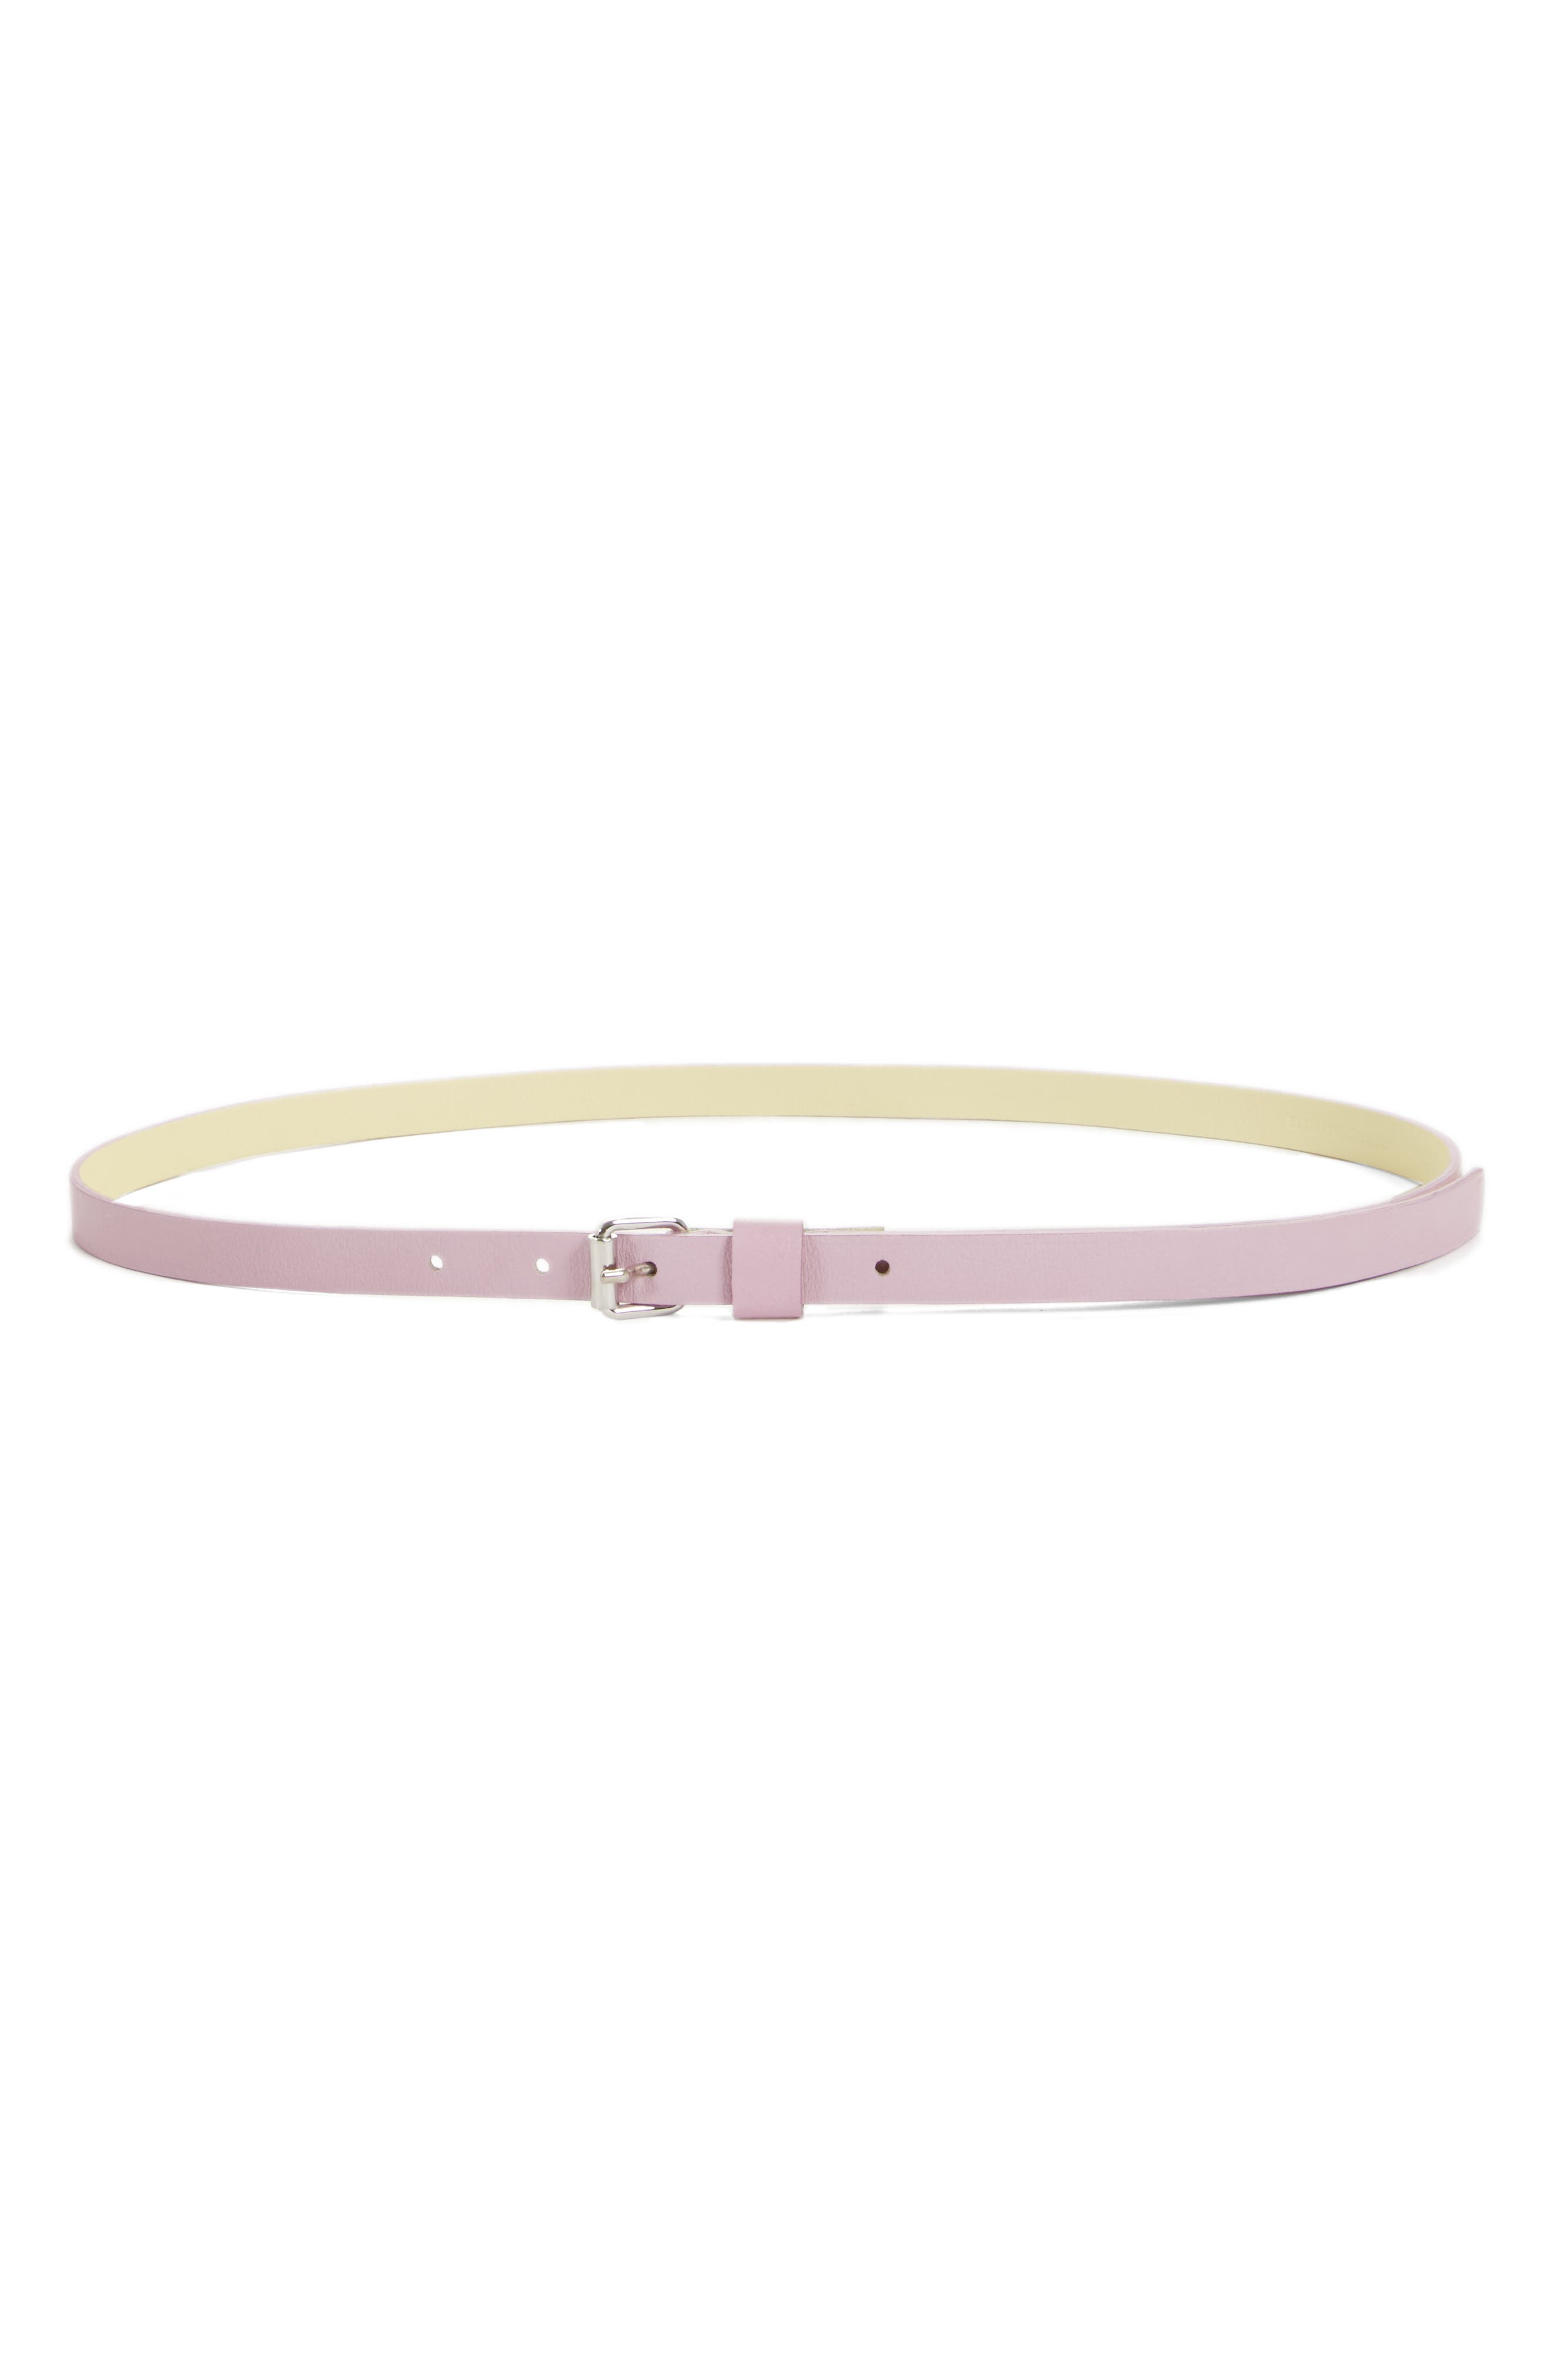 Leather Skinny Belt,                         Main,                         color,